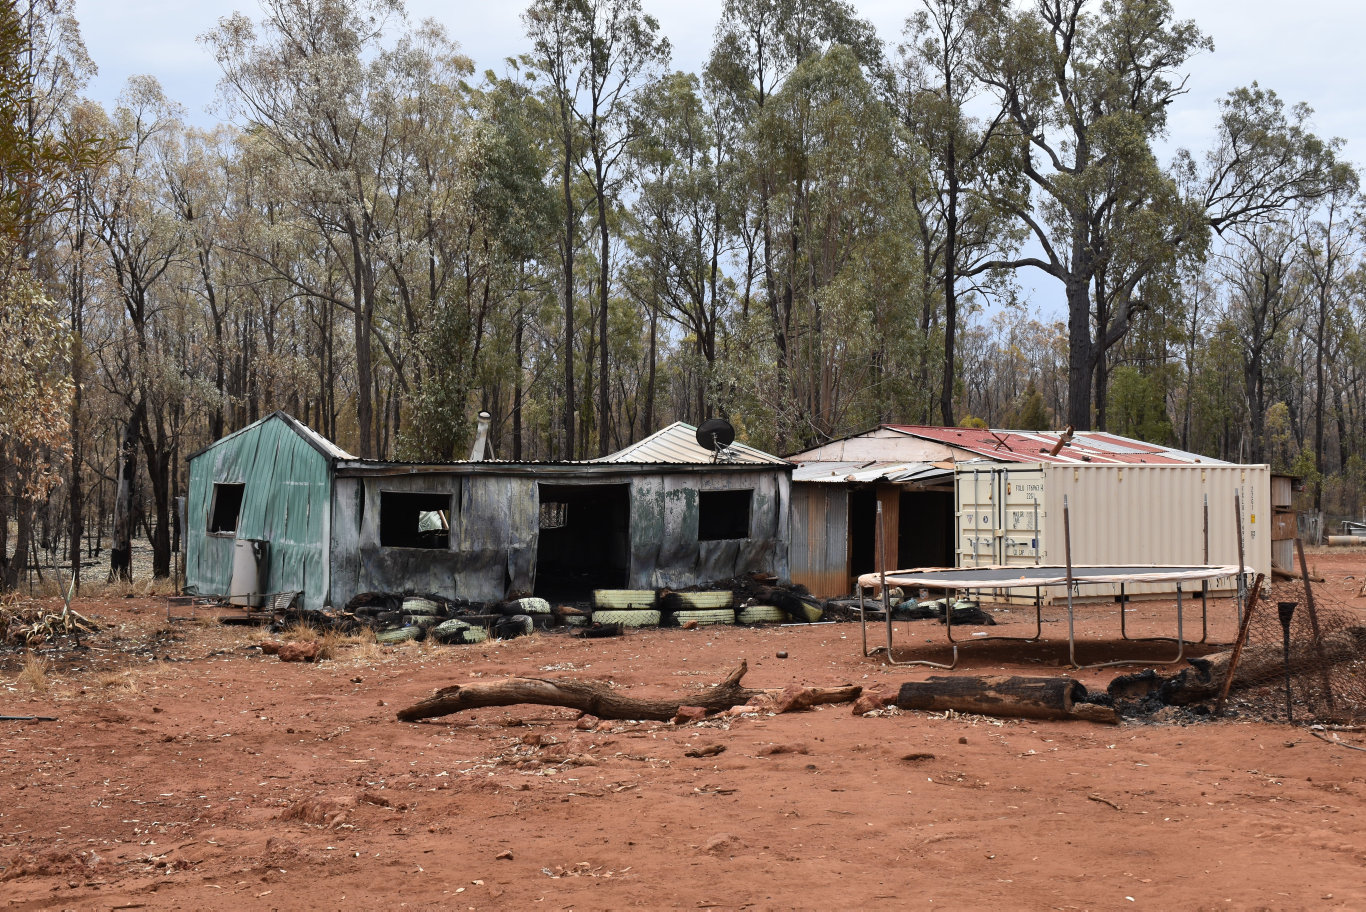 A home at Koala Dr, Cypress Gardens, was destroyed by fire Thursday night.